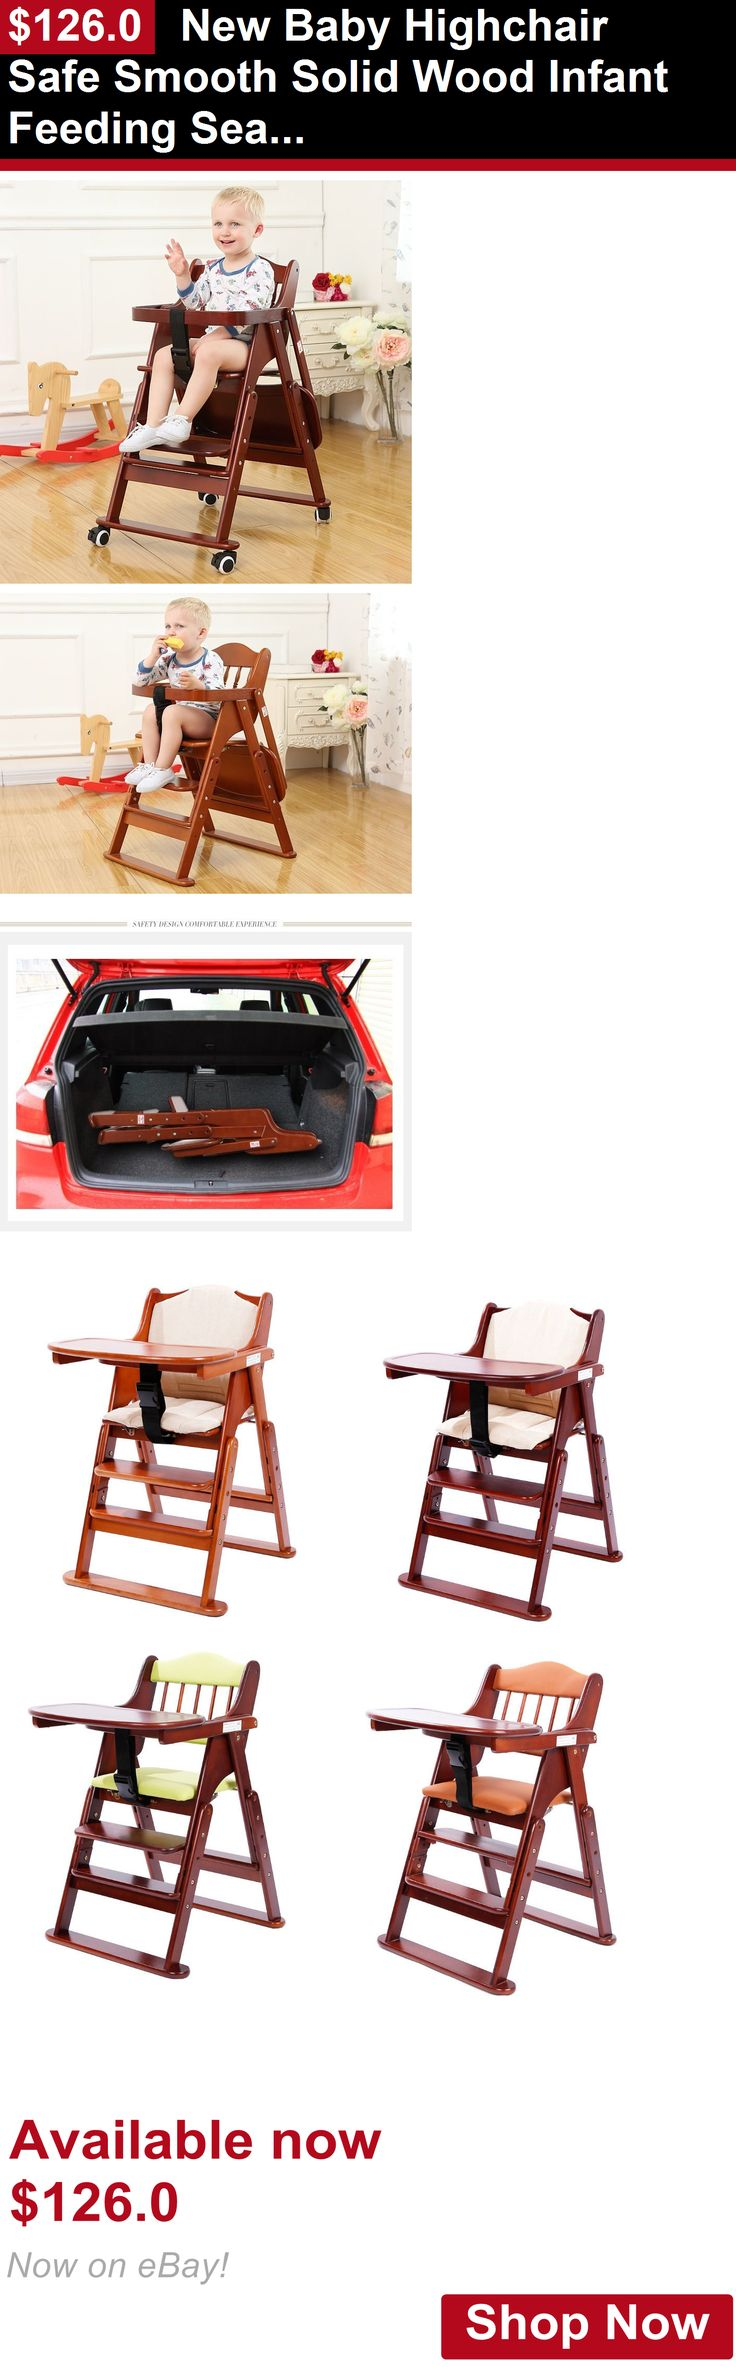 Baby High Chairs: New Baby Highchair Safe Smooth Solid Wood Infant Feeding Seat Folding High Chair BUY IT NOW ONLY: $126.0